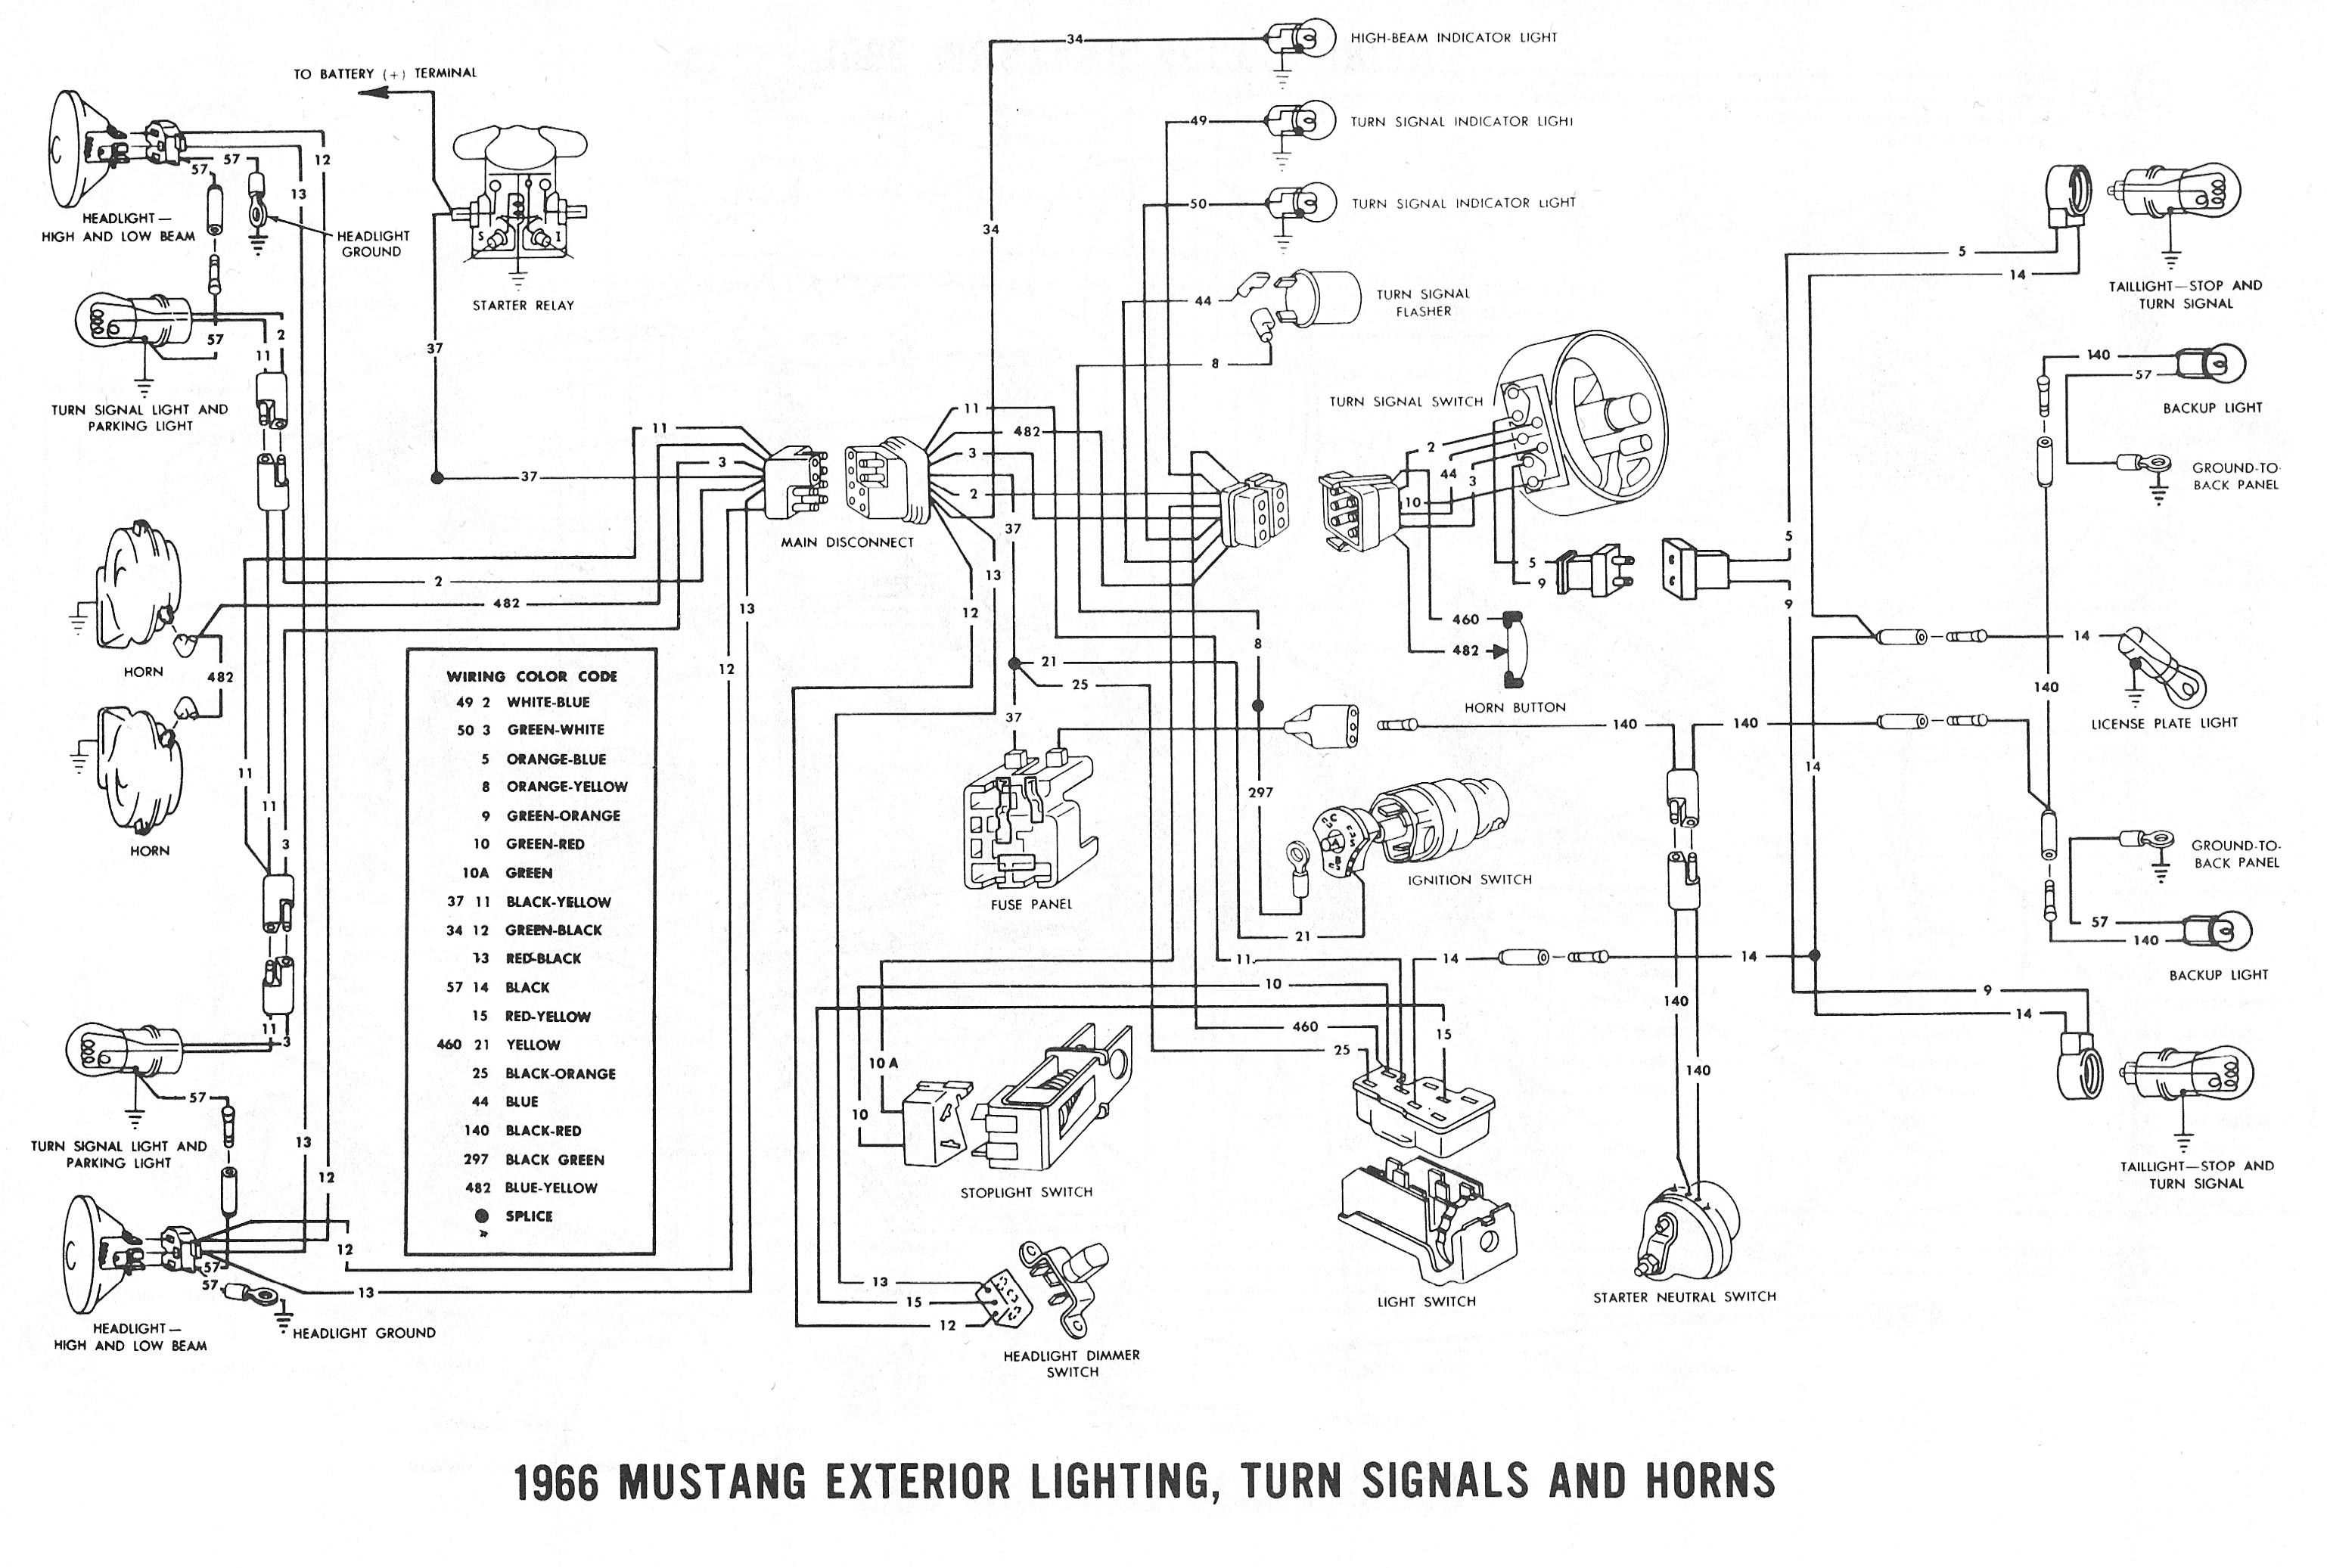 wiring diagrams free download further 65 mustang heater fan diagram1966 mustang wiring diagram wiring diagrams scw 1965 ford mustang wiring harness library wiring diagram 1966